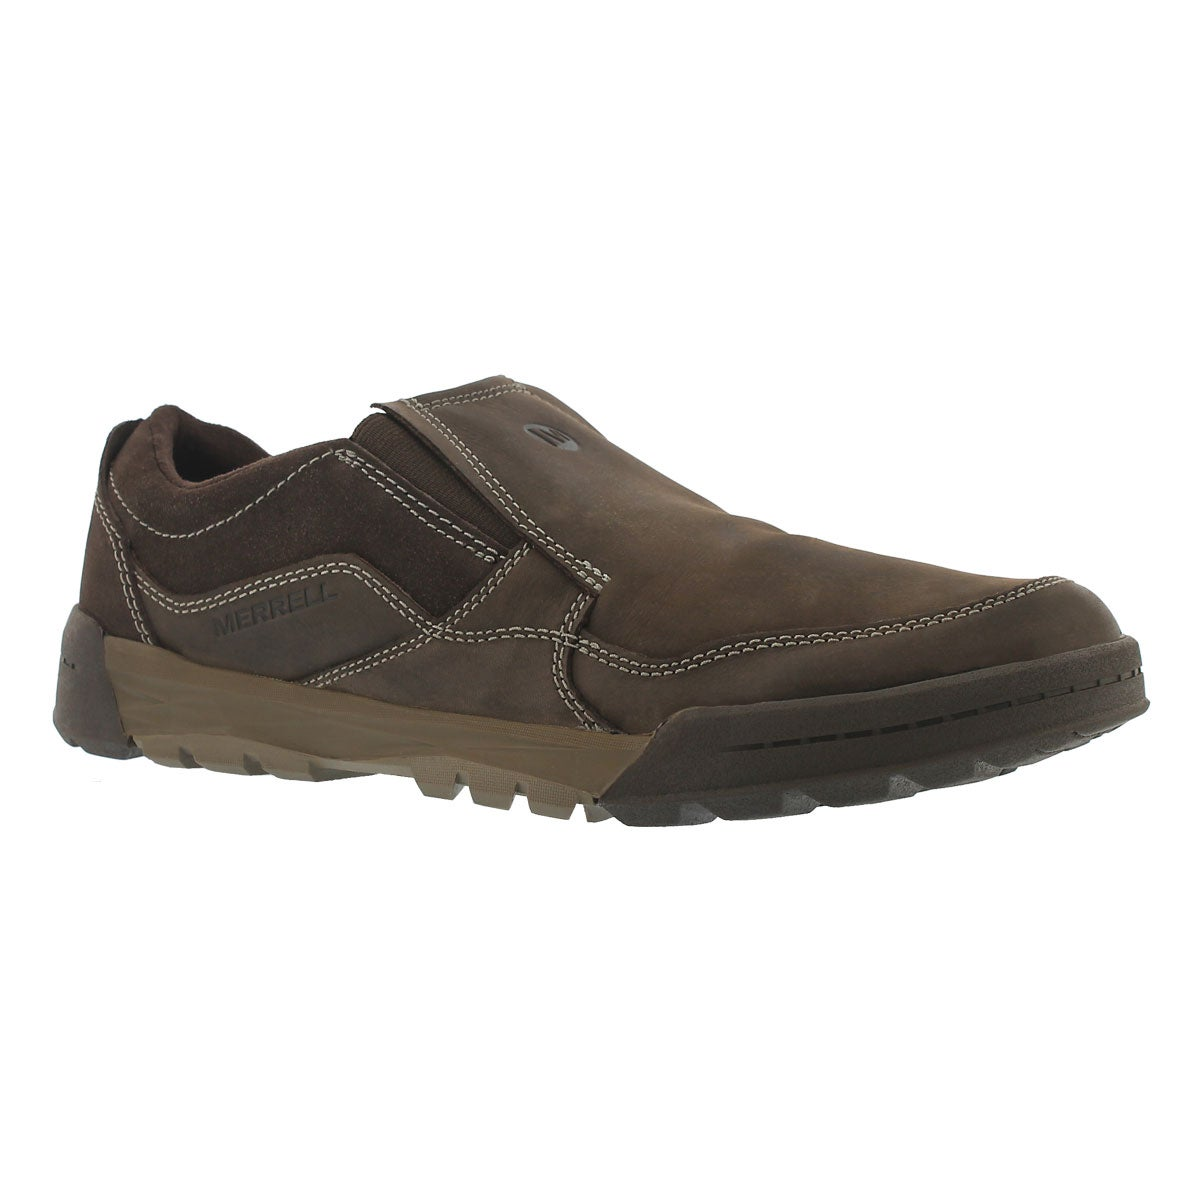 Mns Berner Moc espresso casual slip on